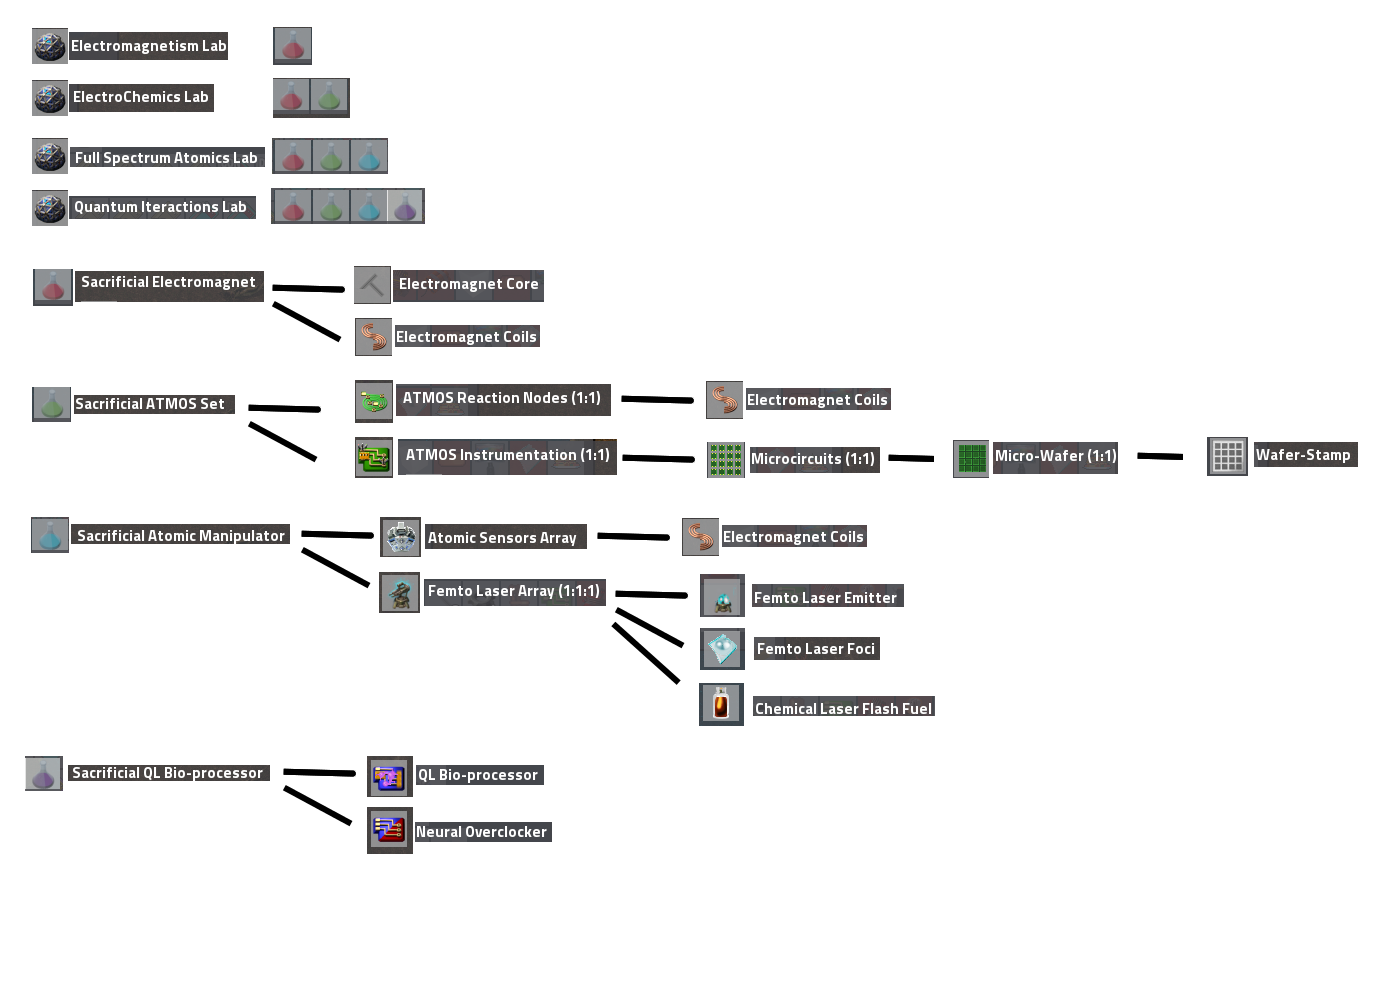 SCT_ProductionTree02.png